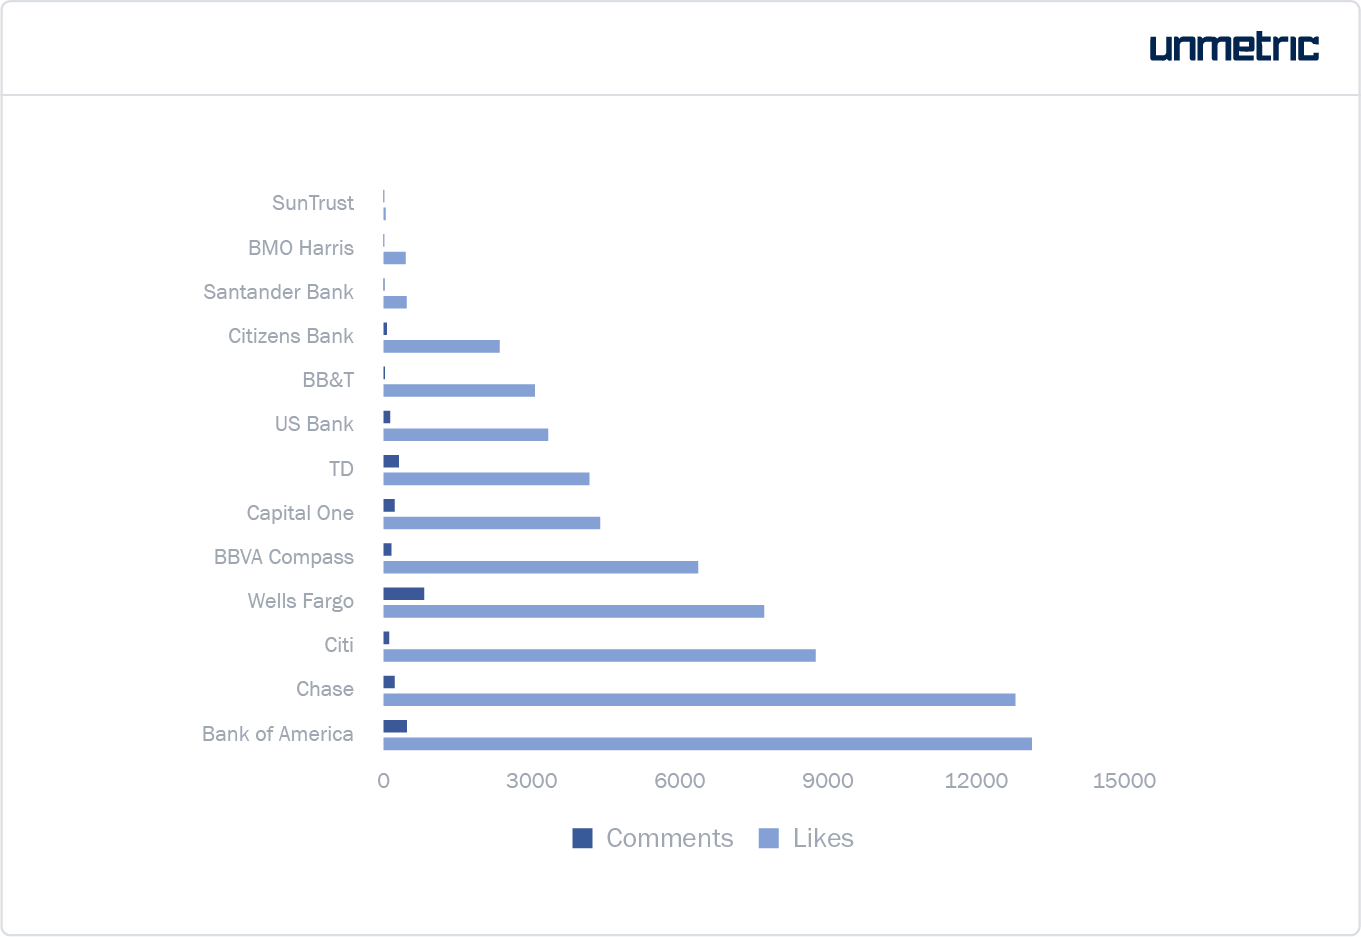 Likes and comments received by banks